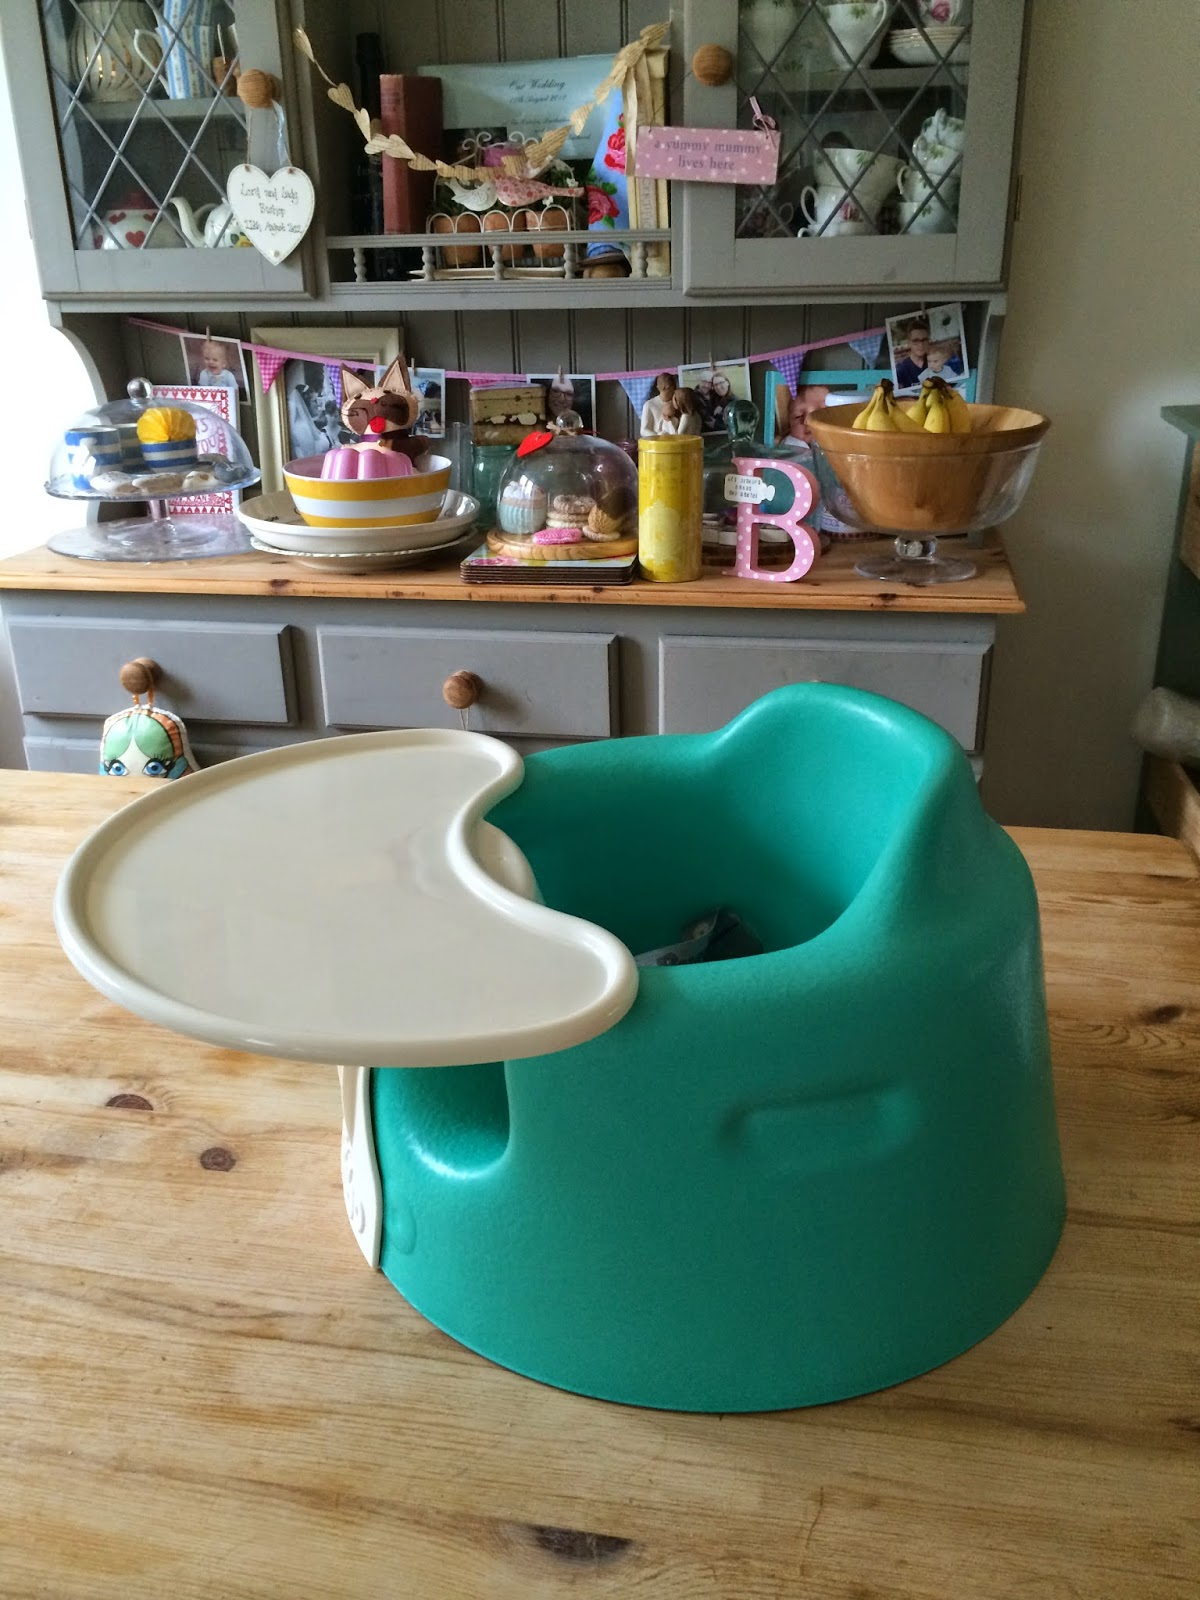 Mrs Bishops Bakes and Banter Bumbo Floor Seat Play Tray REVIEW